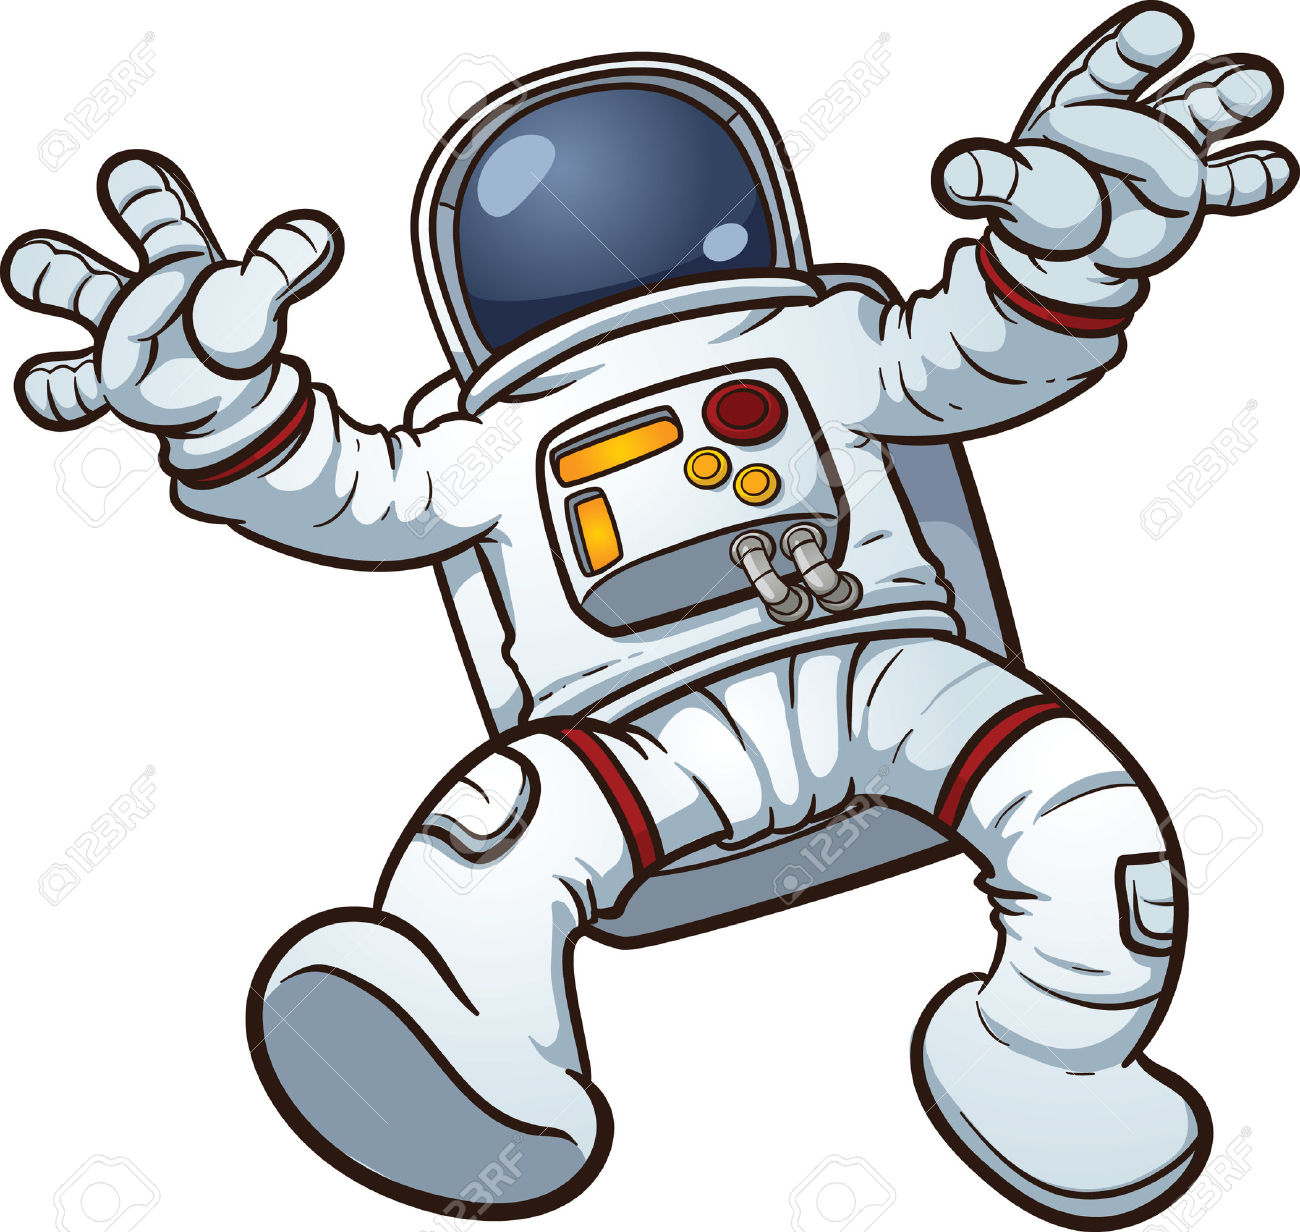 collection of high. Astronaut clipart transparent background